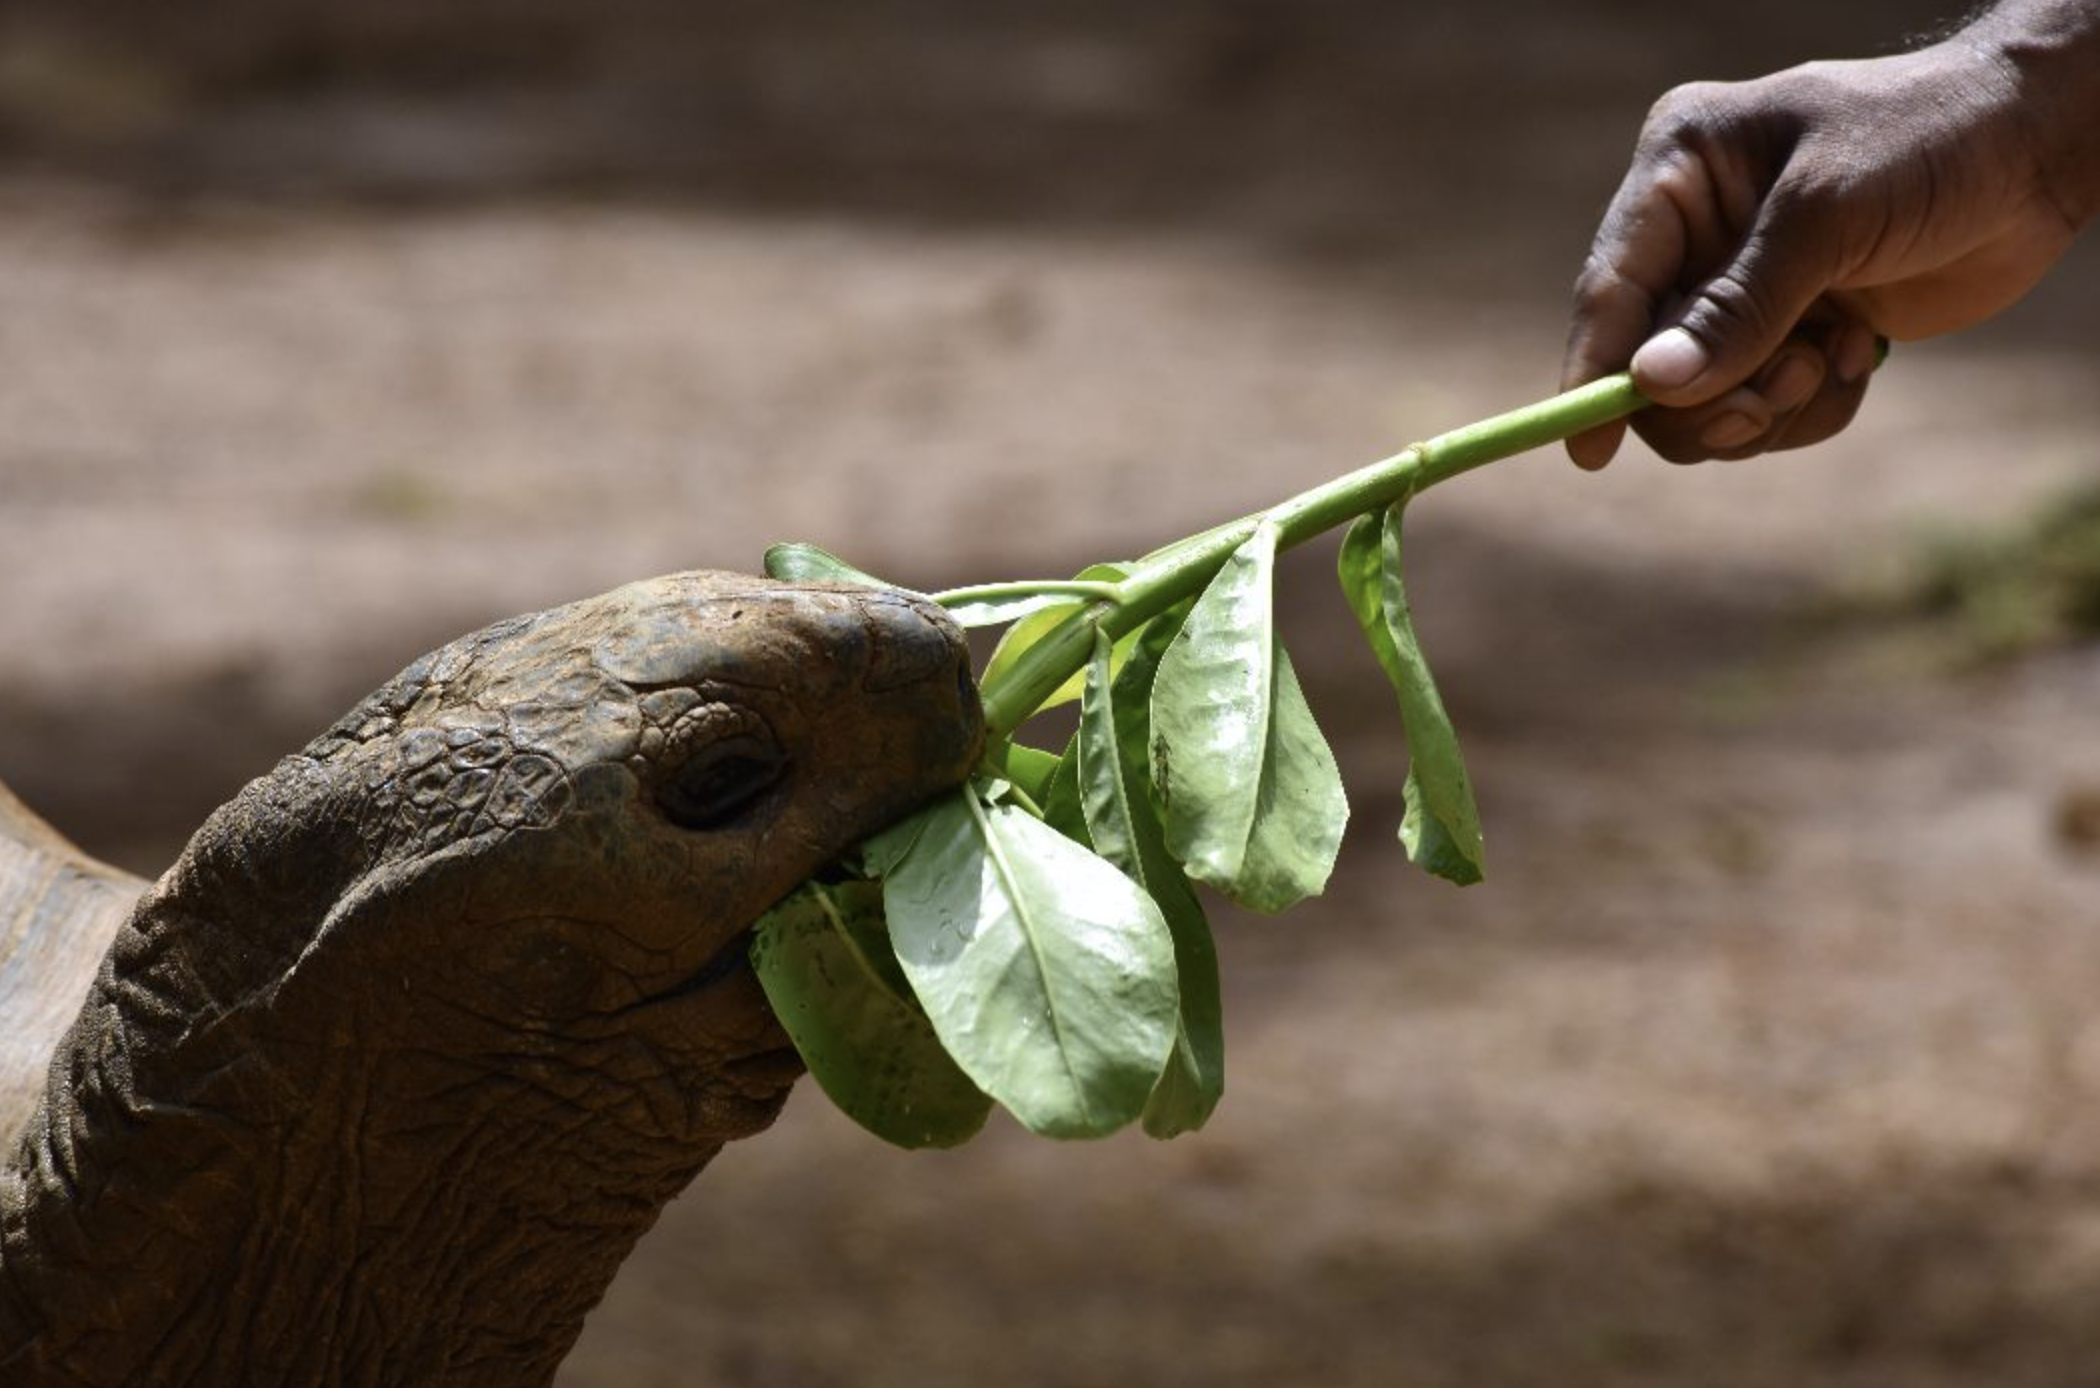 Tortoise that gets fed